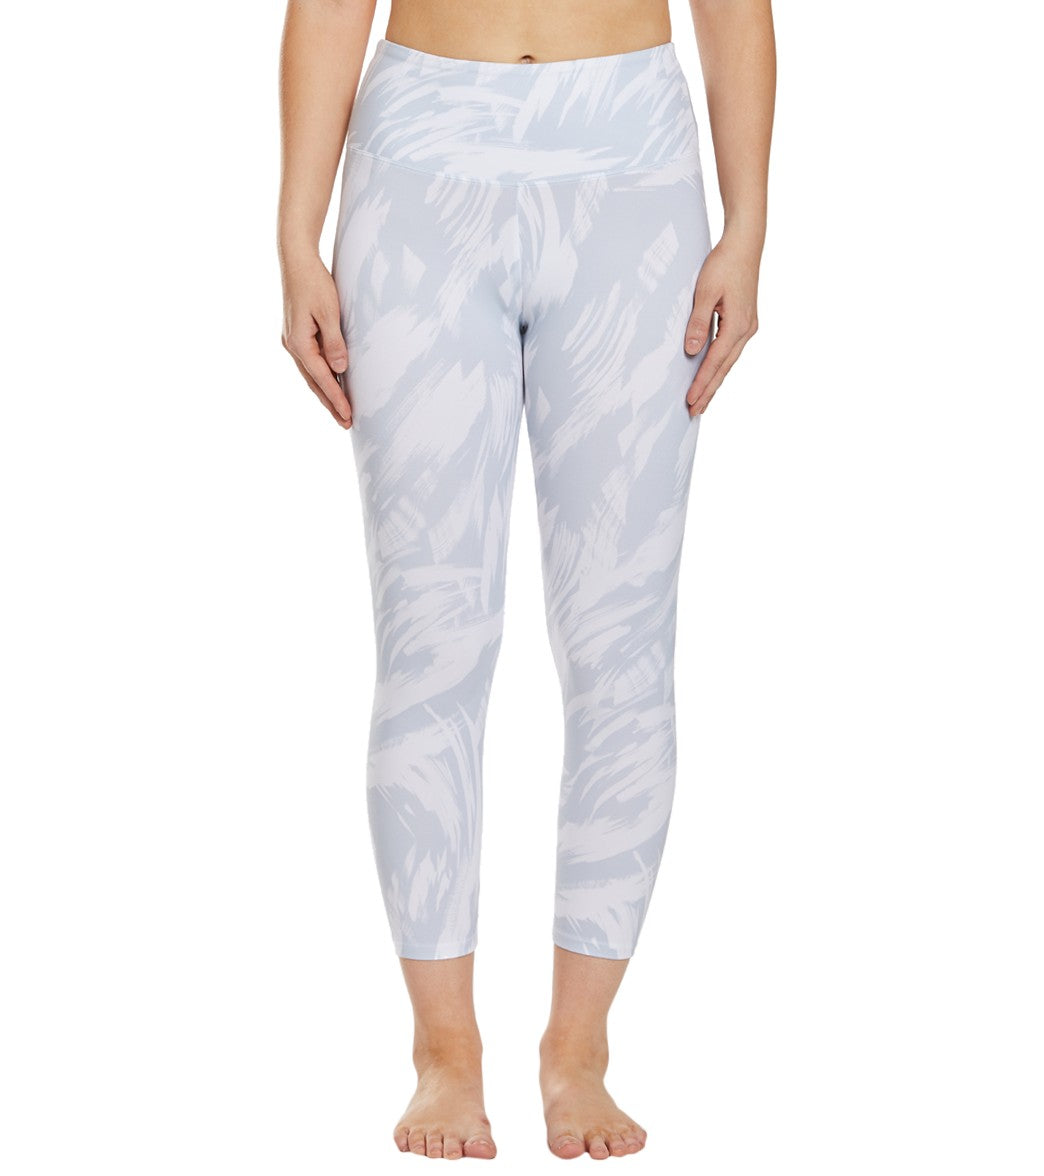 Balance Collection Printed High Waisted Yoga Capri Pants - Microchip Invert Brush Strokes Cotton